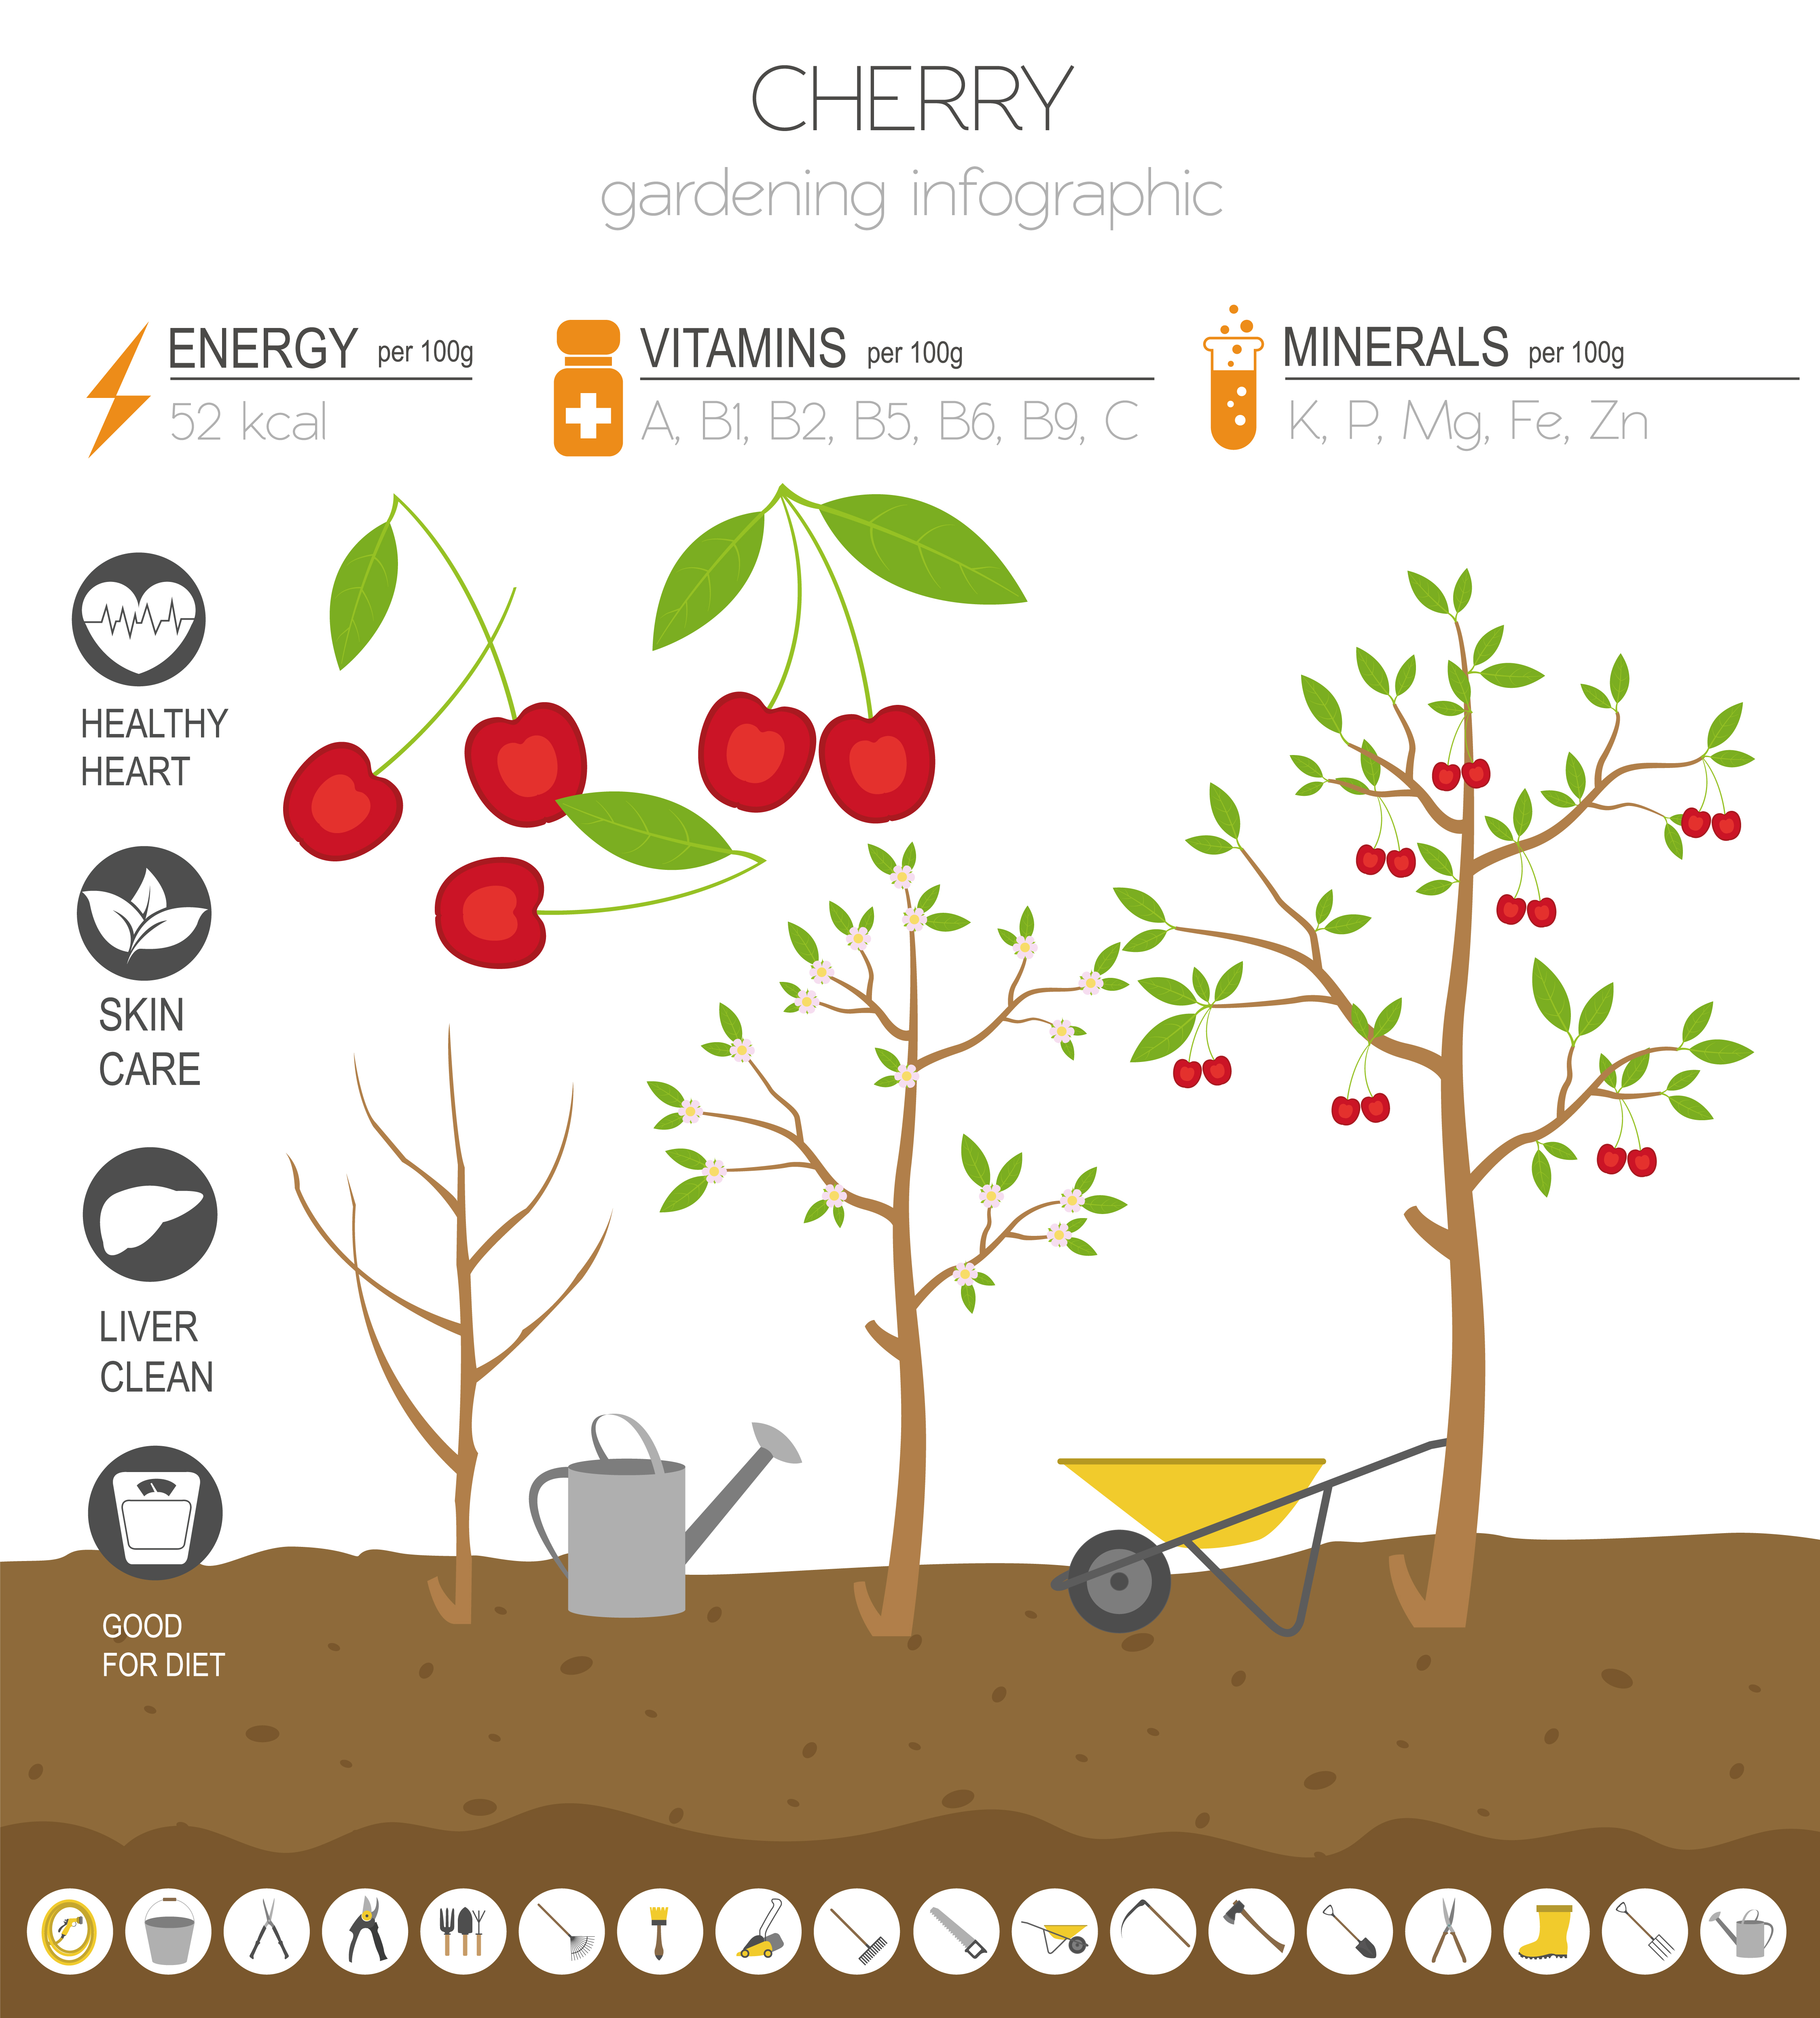 Basic information about cherries